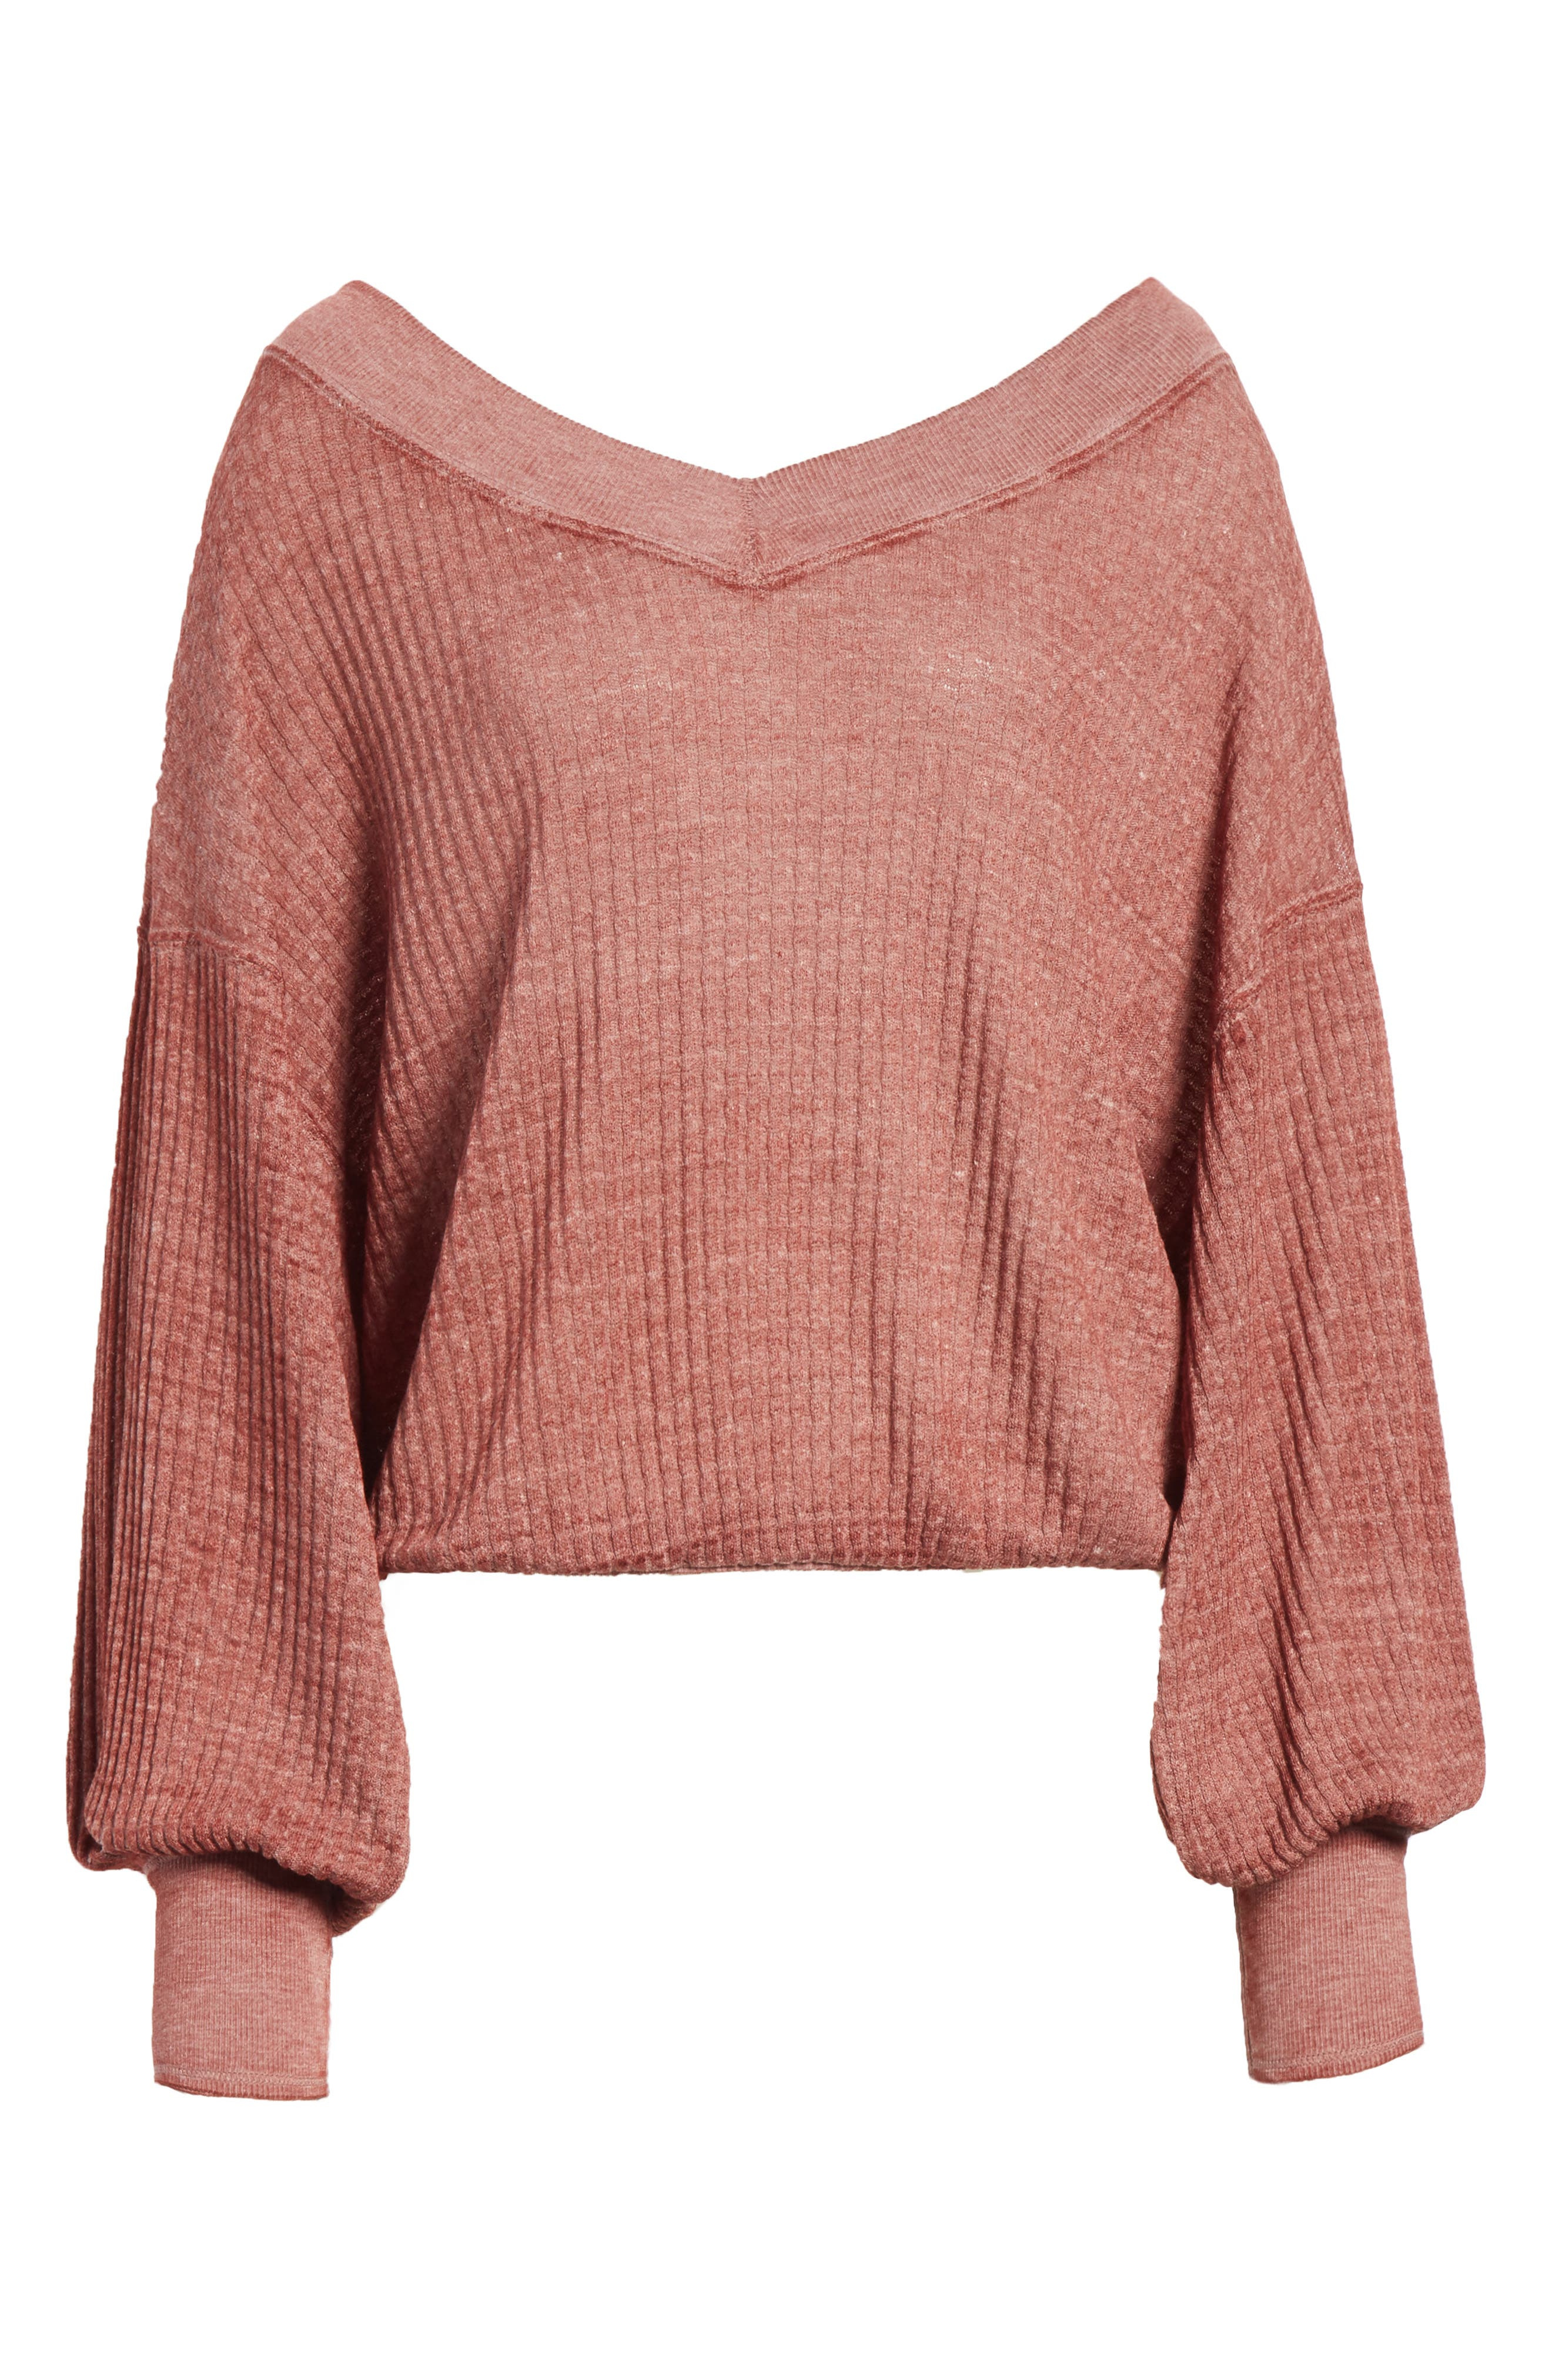 FREE PEOPLE, We the Free by Free People South Side Thermal Top, Alternate thumbnail 6, color, 611